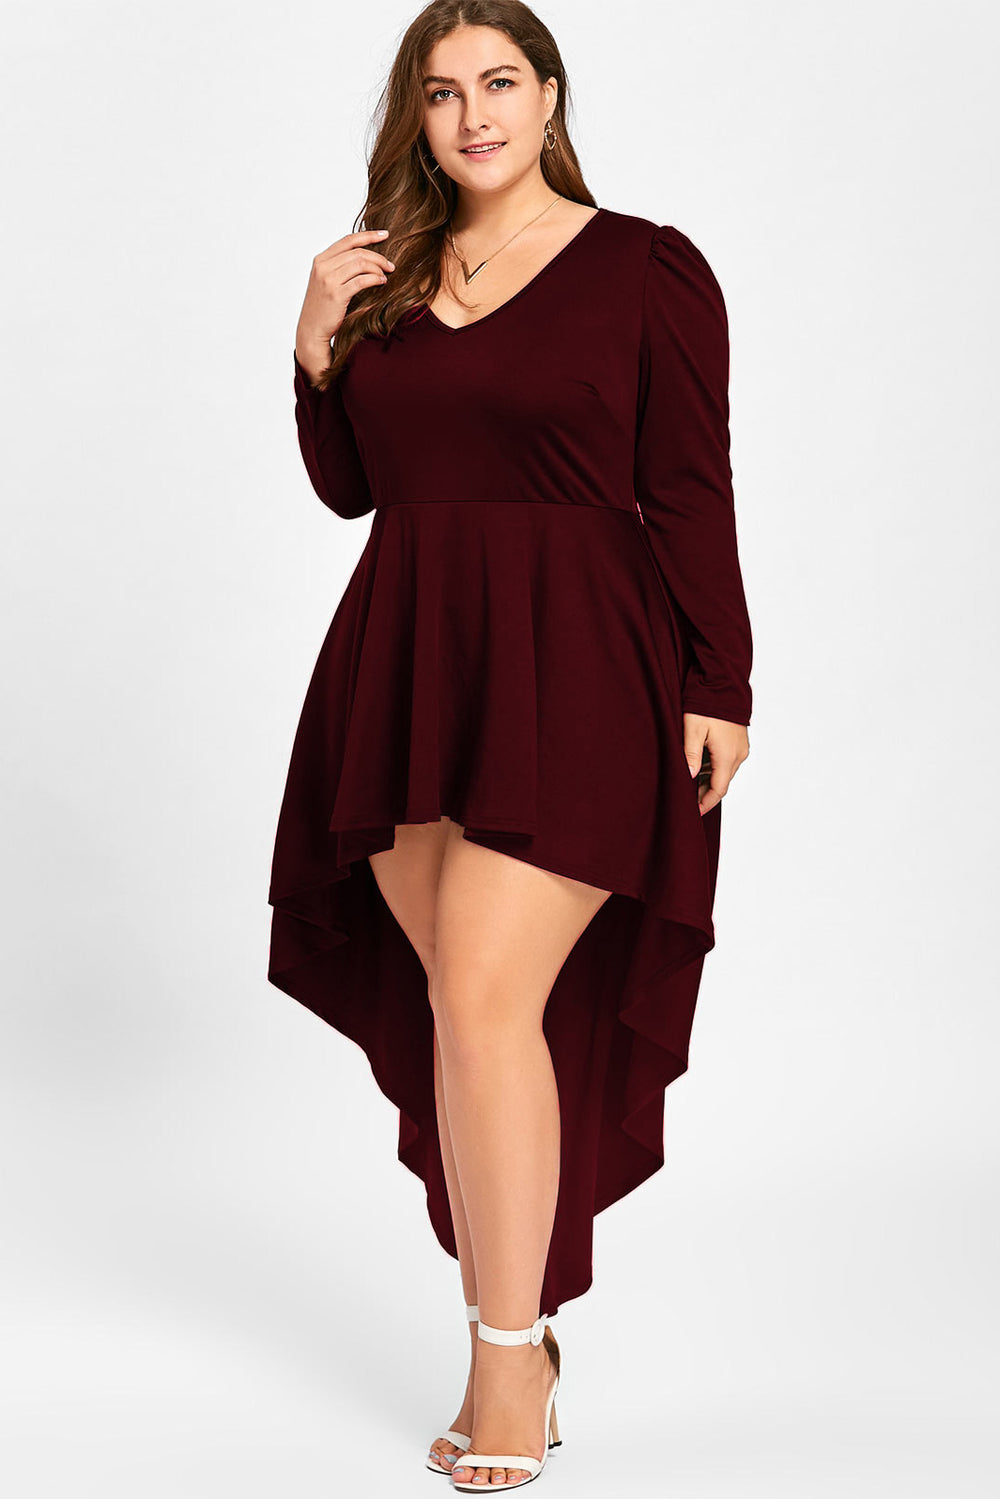 a0653e4832 Plus Size Chic Long Sleeve High Low V Neck Dress – slayboo